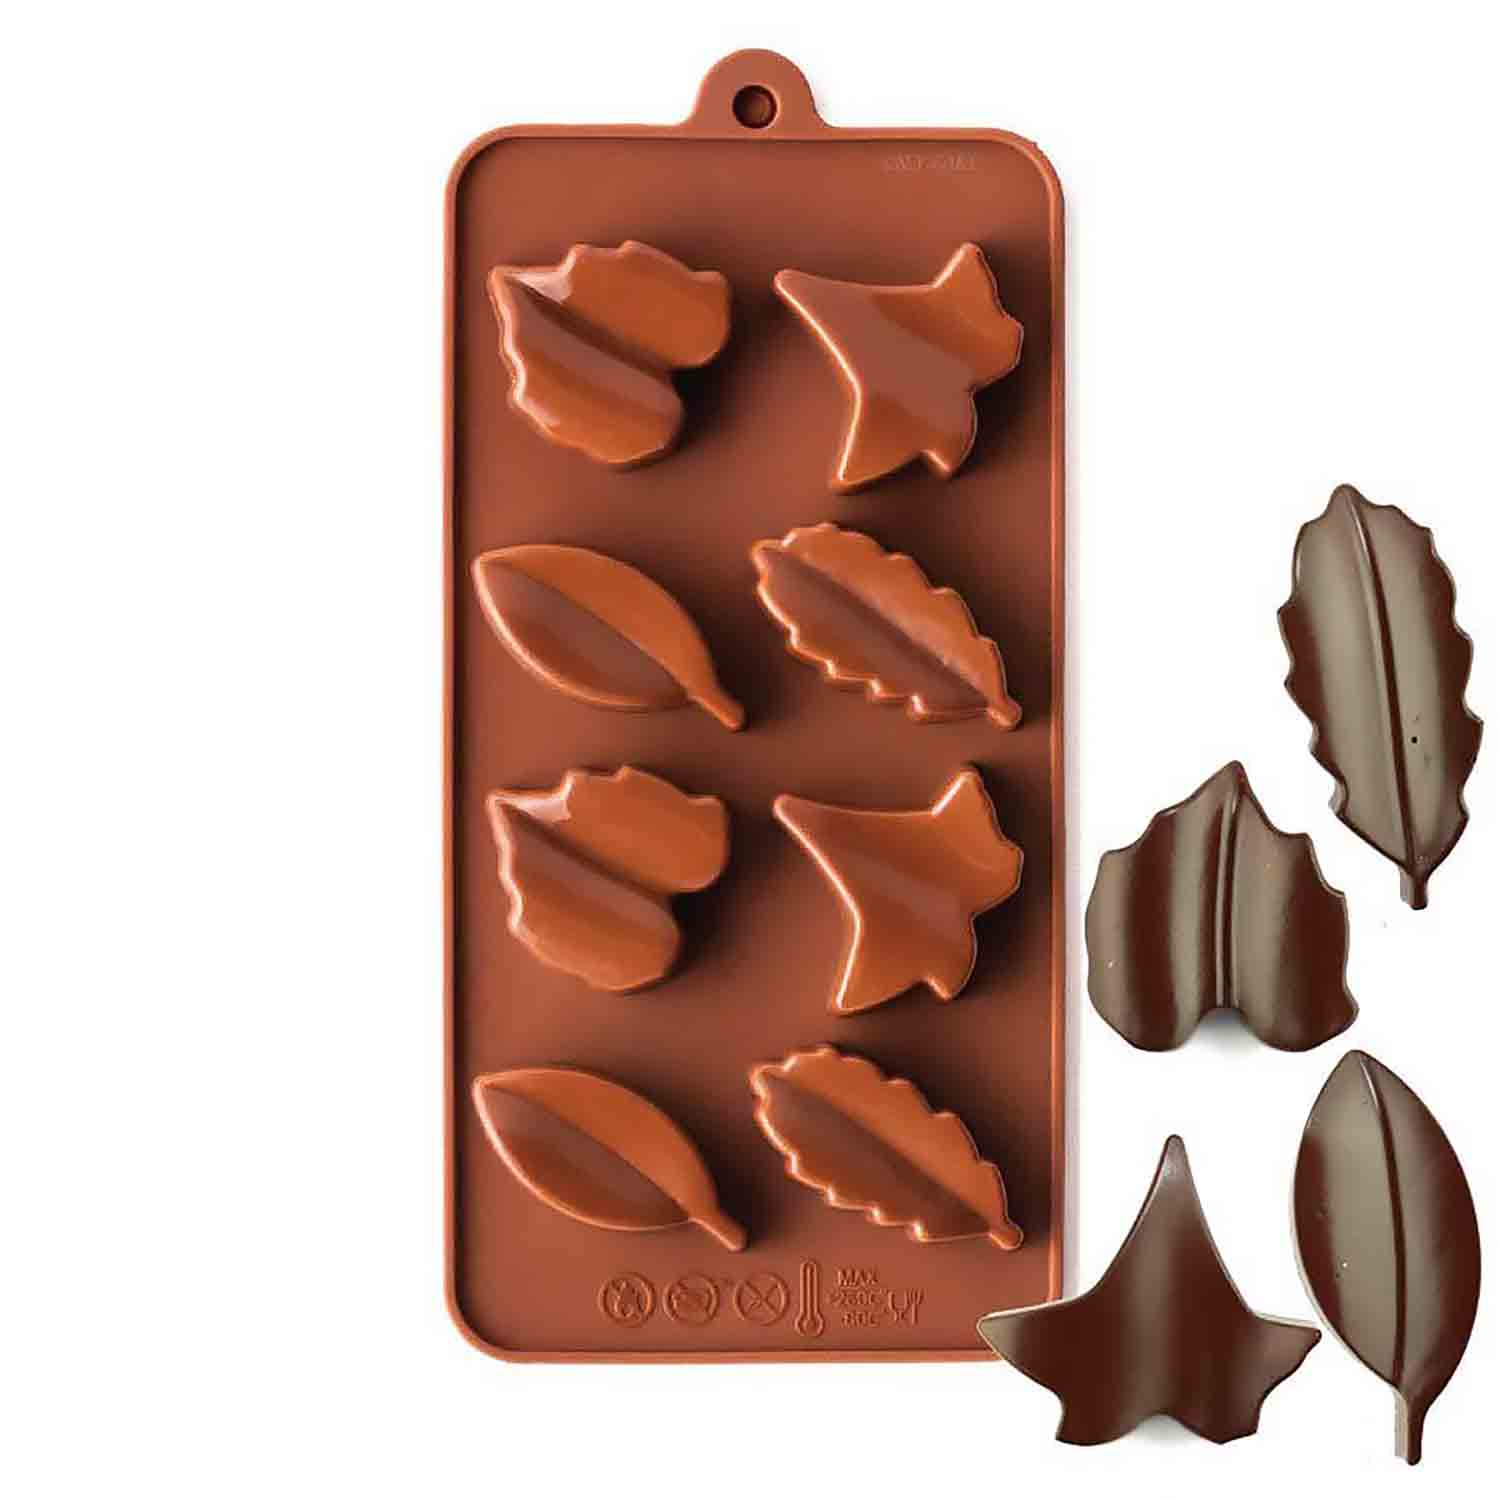 Leaves Silicone Chocolate Candy Mold